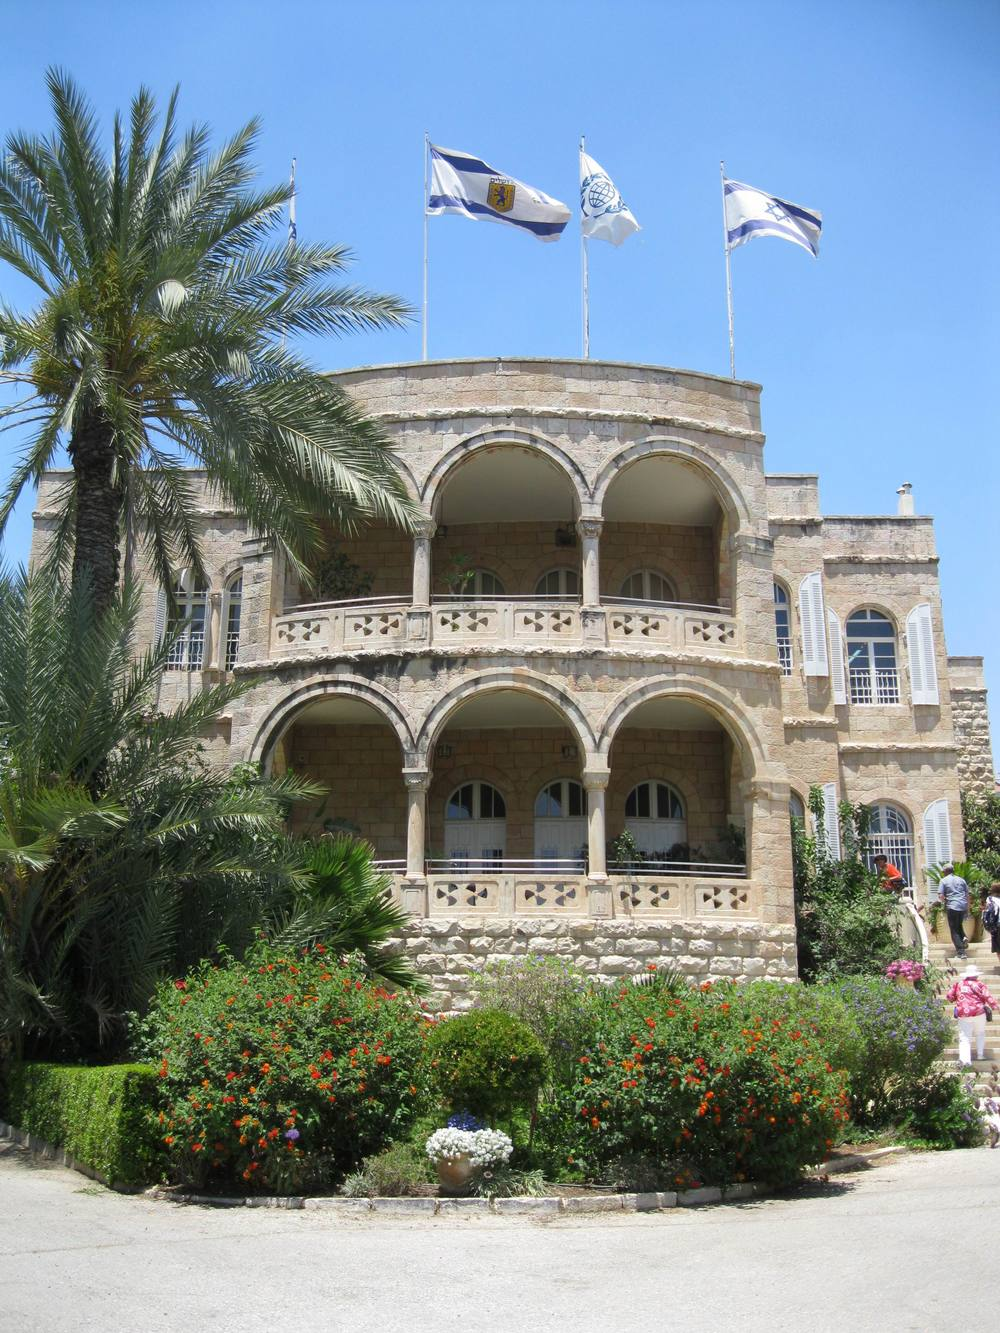 International Christian Embassy Jerusalem headquarters office